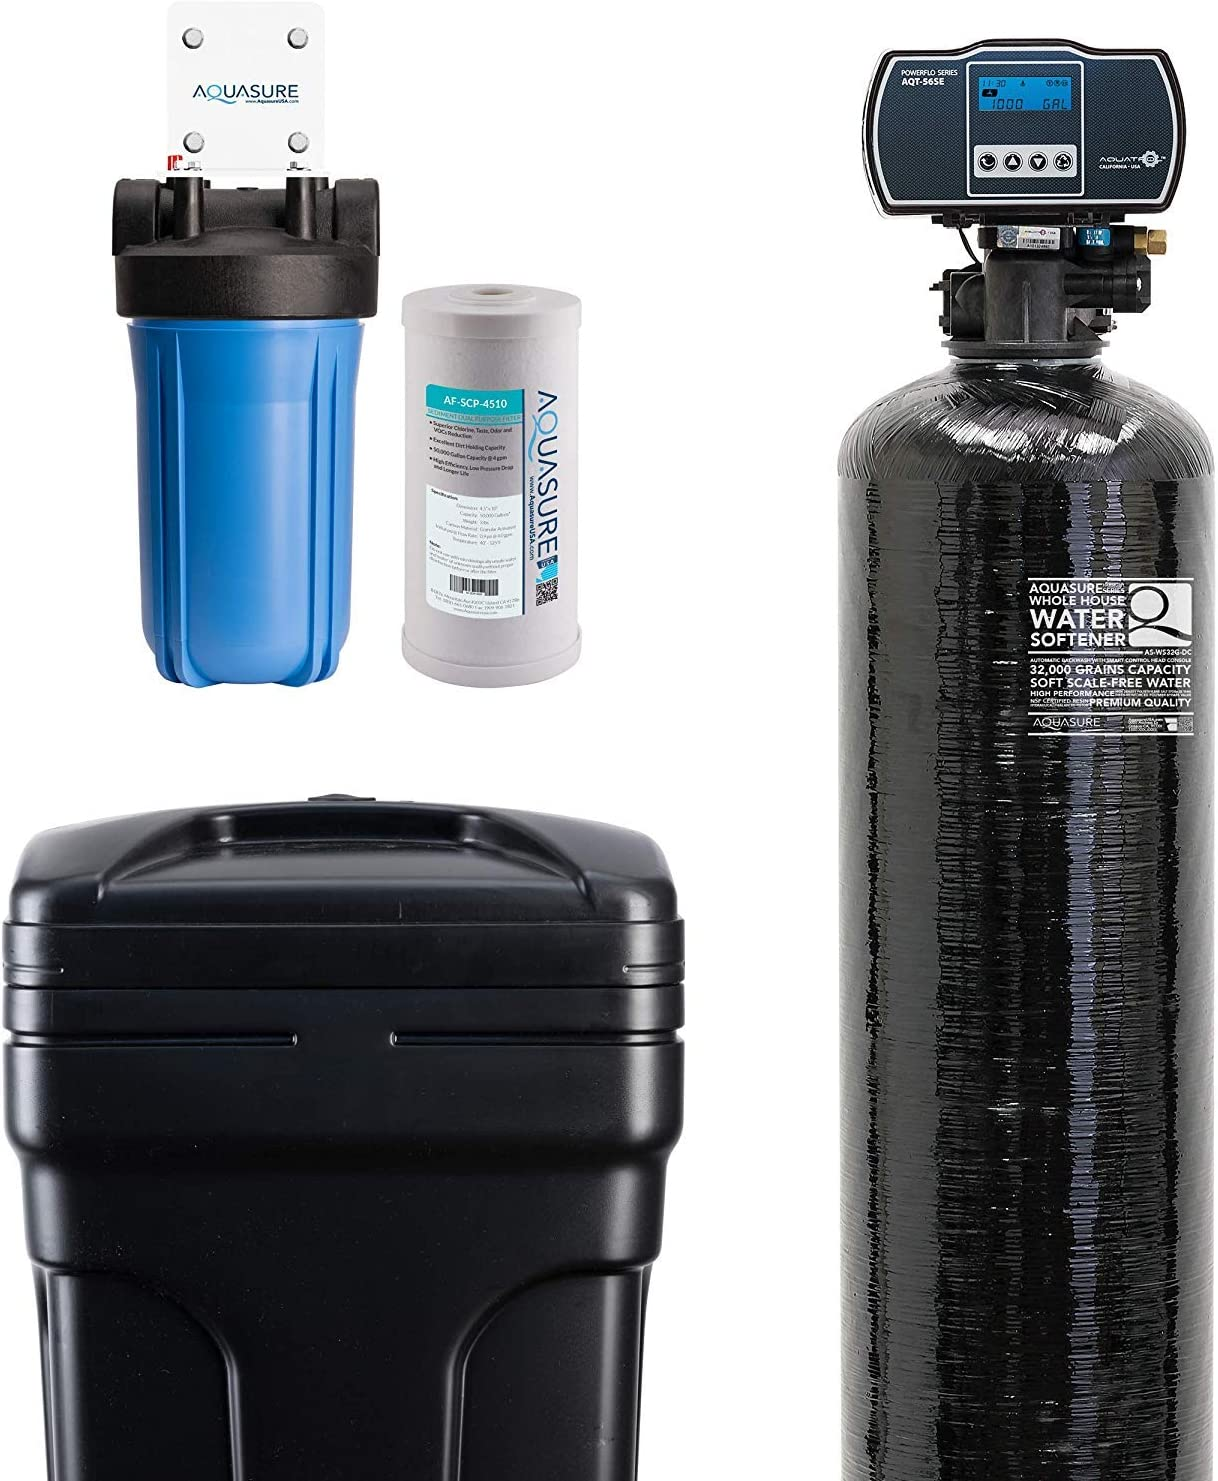 1/'/'To 3//4/'/' Pre-filter Central Large Flow Descaling Tap Household Water Purifier